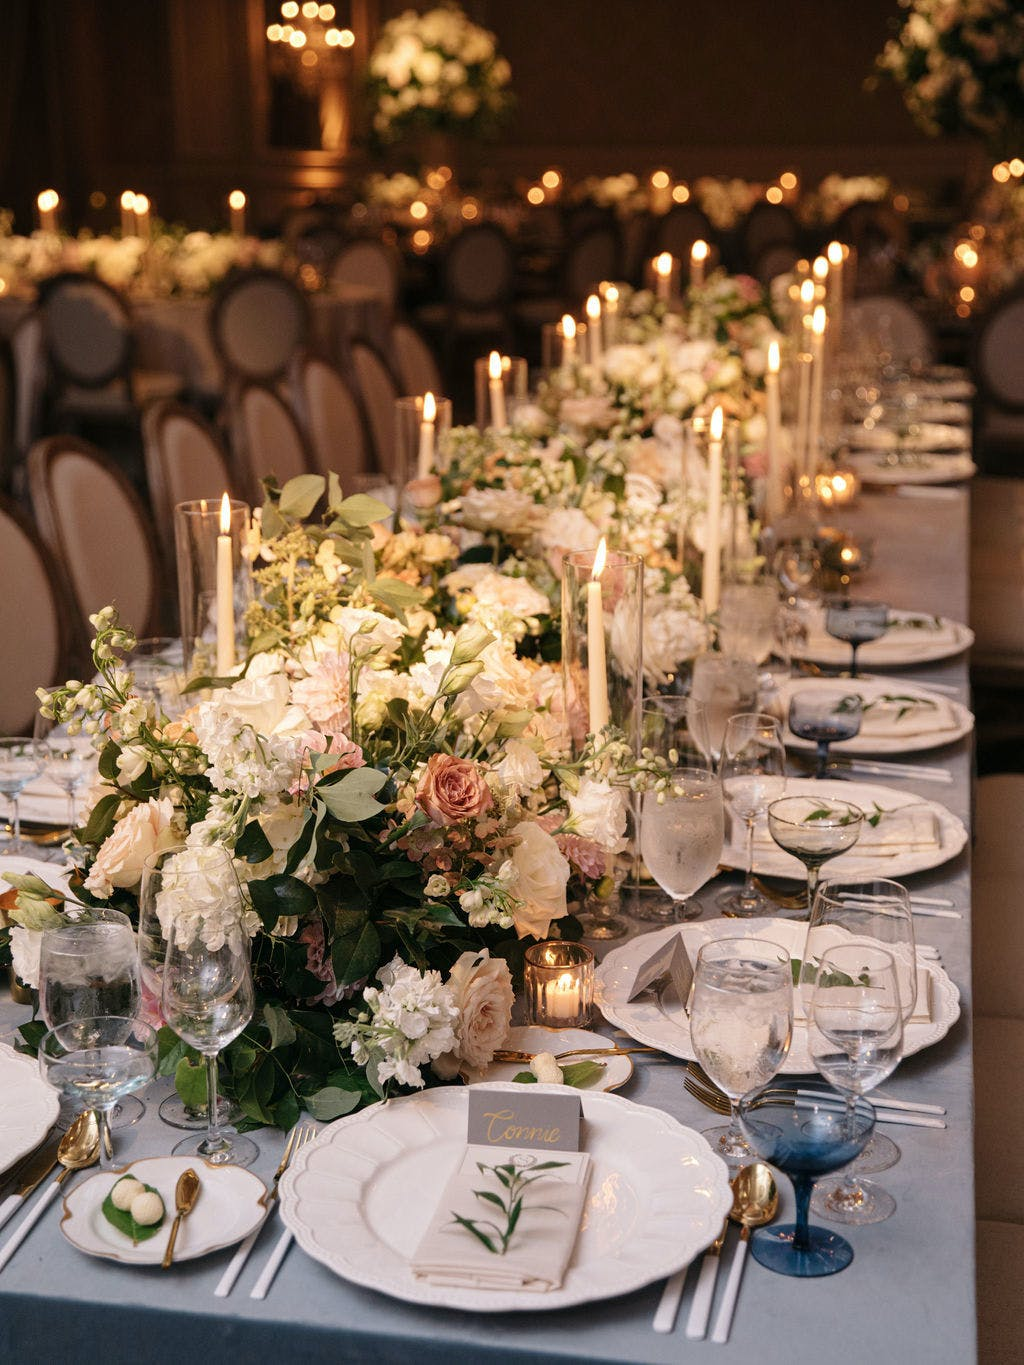 Elegant Floral Wedding Tablescape at Four Seasons Hotel Chicago Planned by Bliss Events Chicago   PartySlate